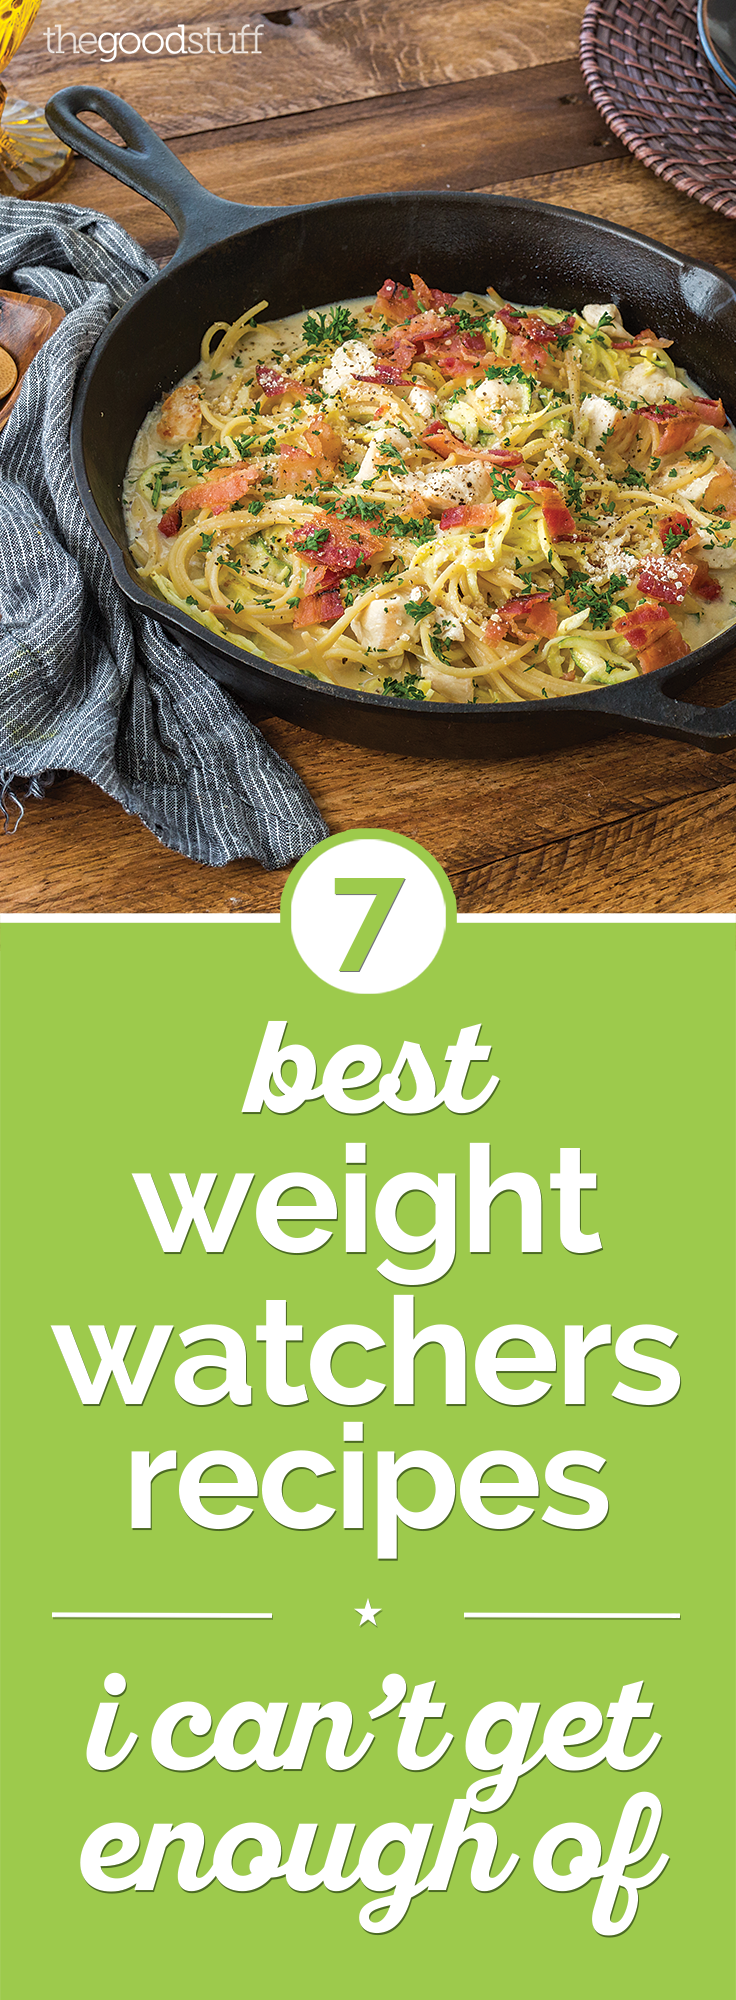 7 Best Weight Watchers Recipes I Can't Get Enough Of | thegoodstuff